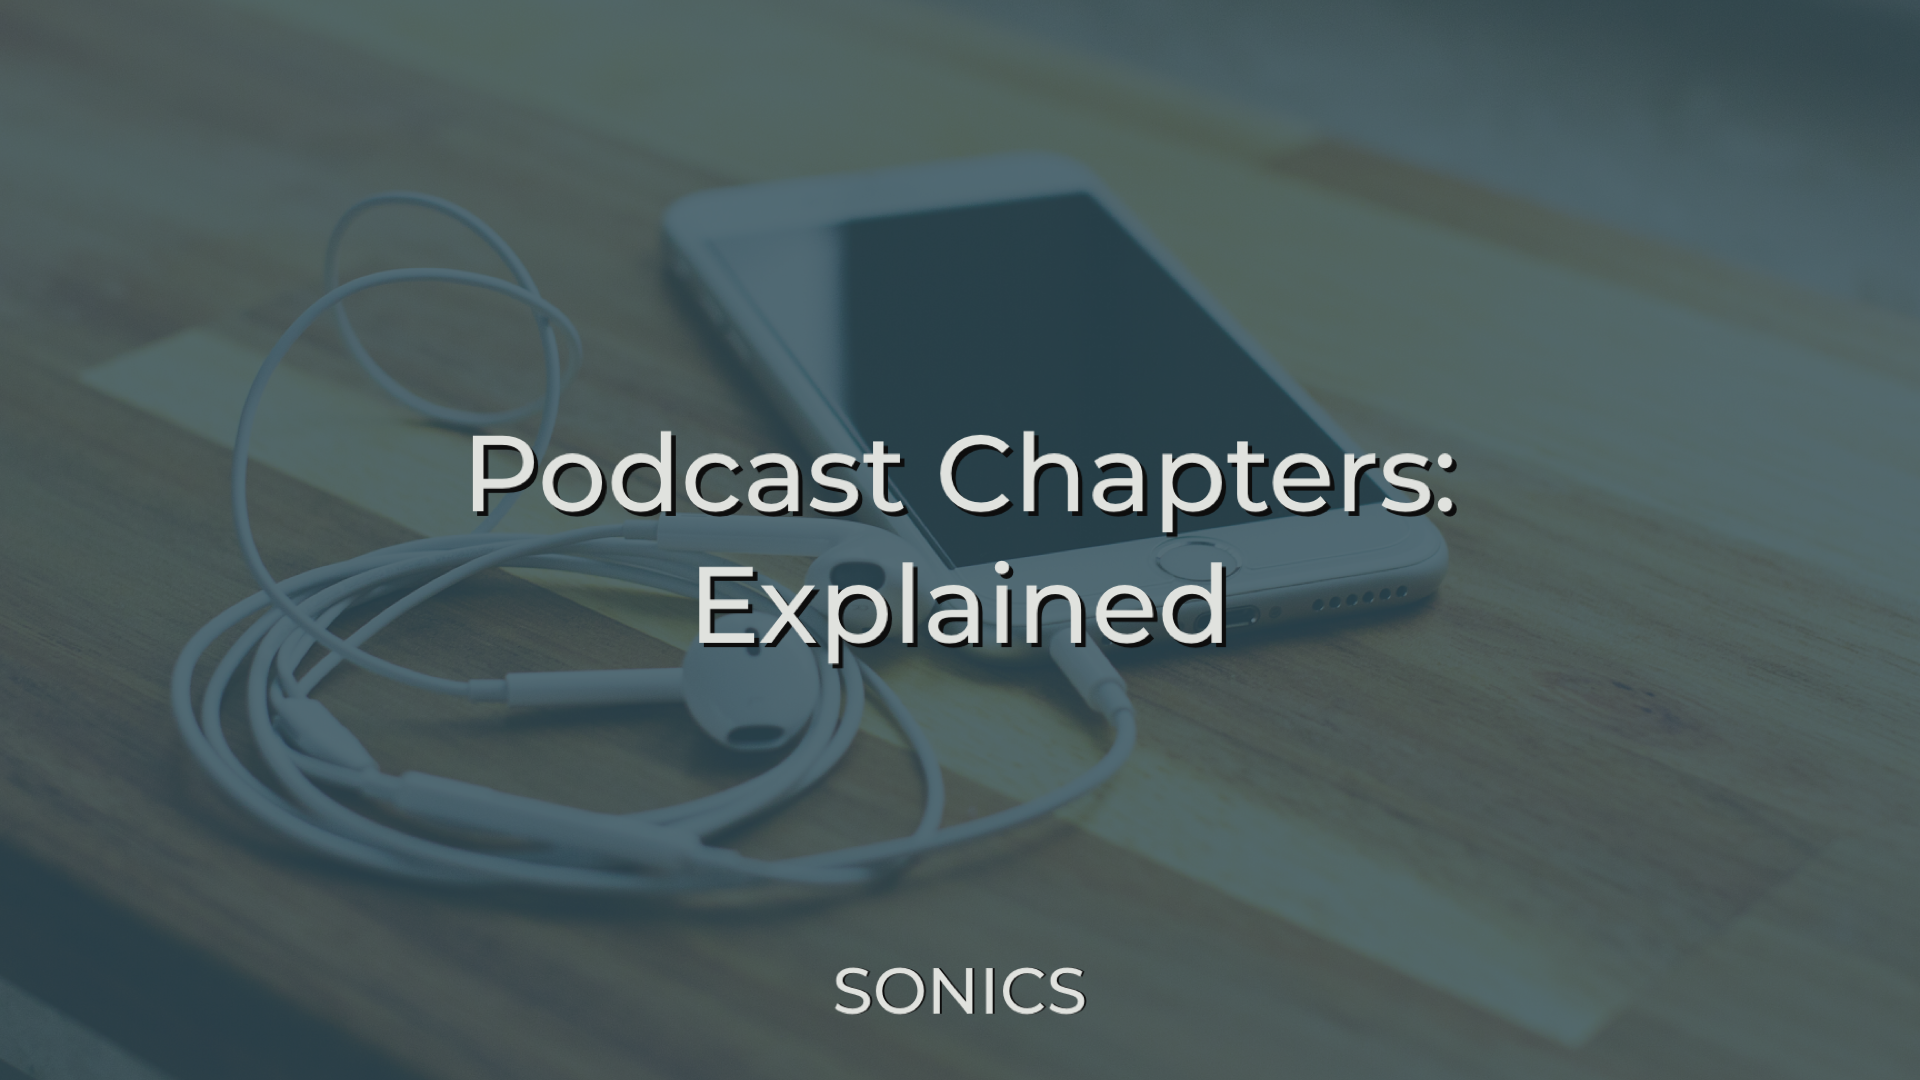 Podcast chapters